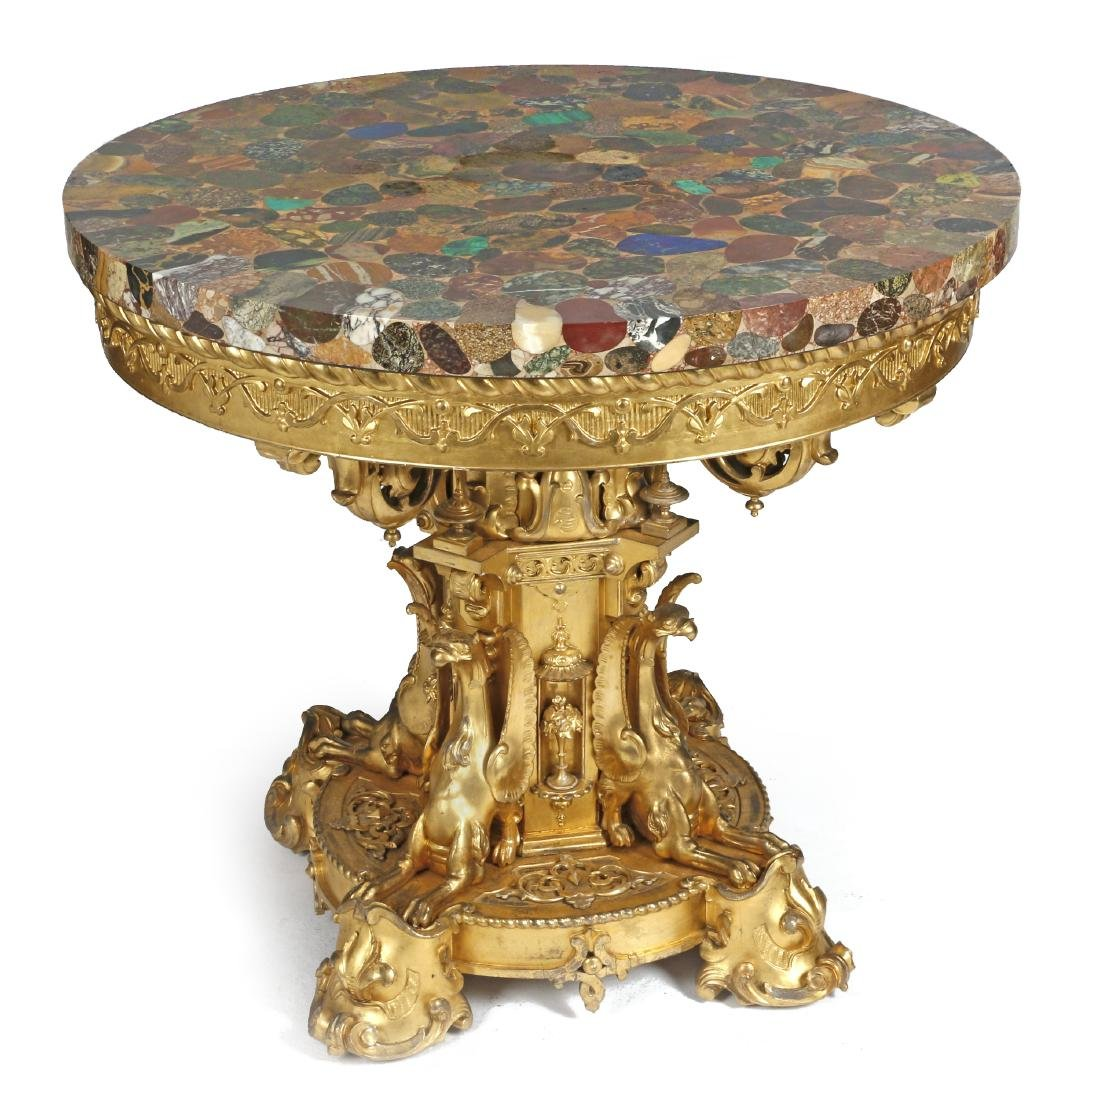 A Gothic Revival gilt wood table with specimen stone